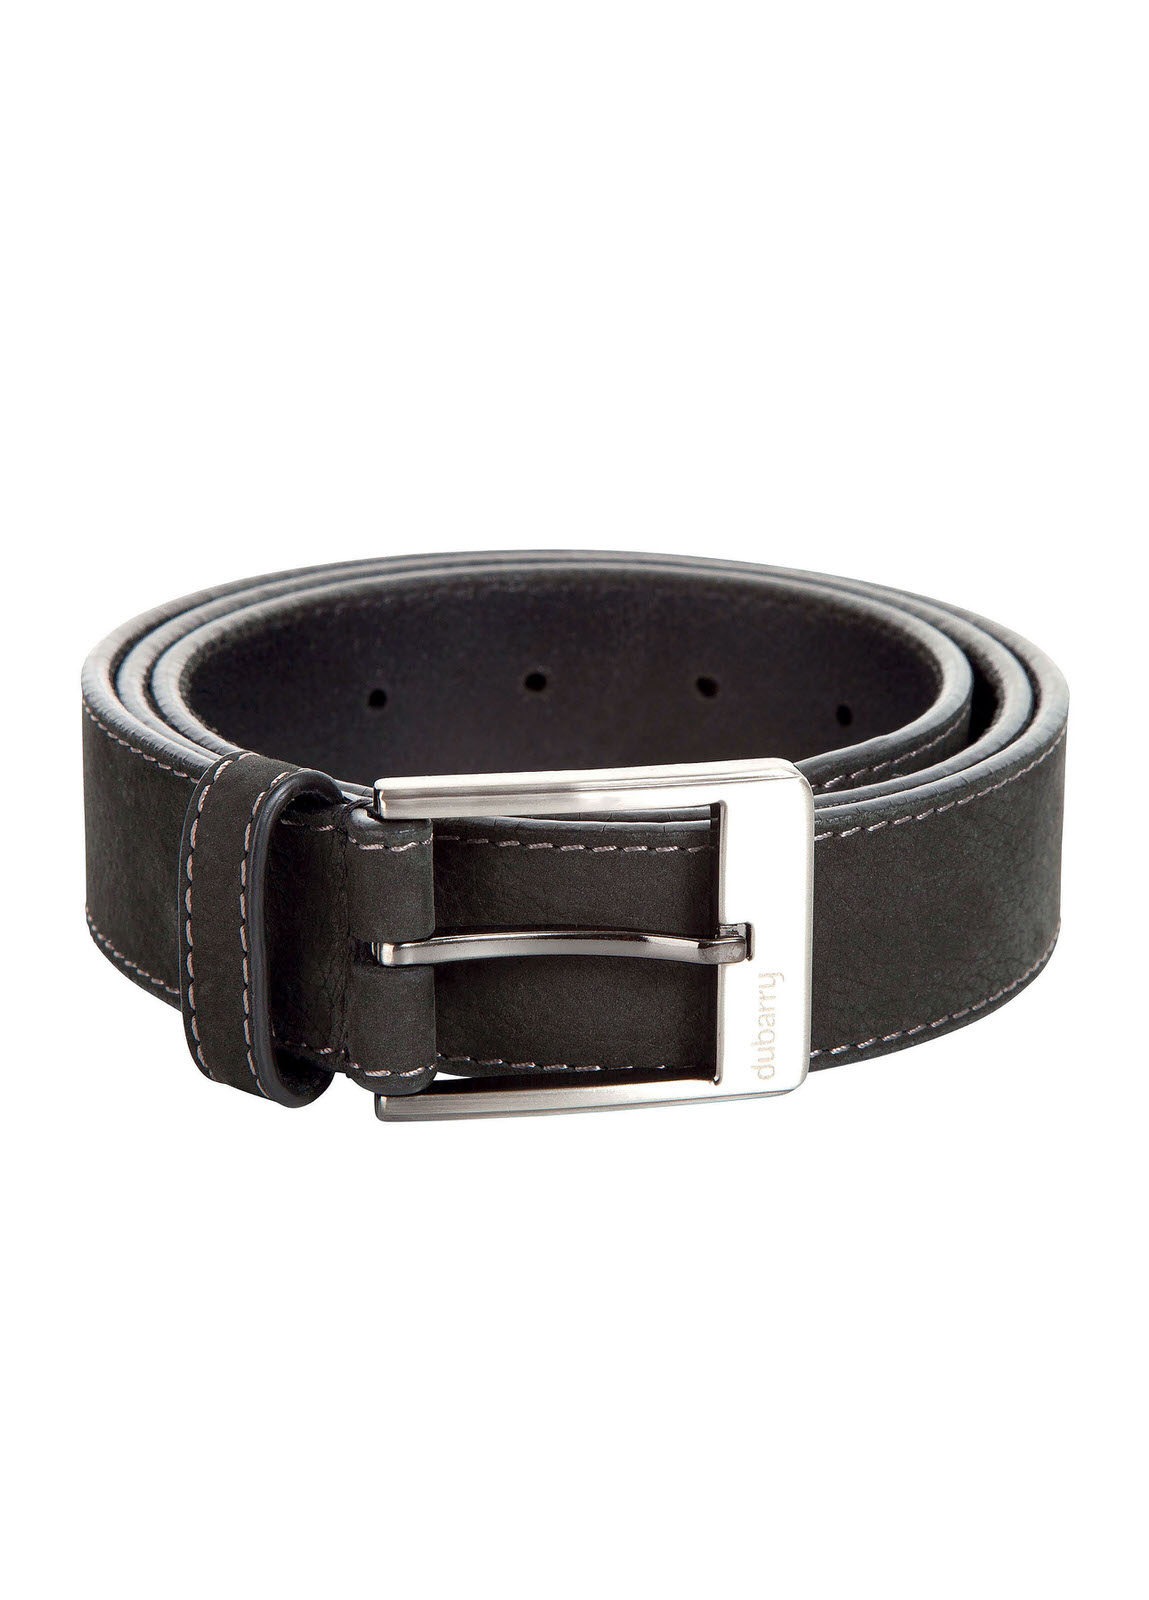 Belt_Black_Image_1